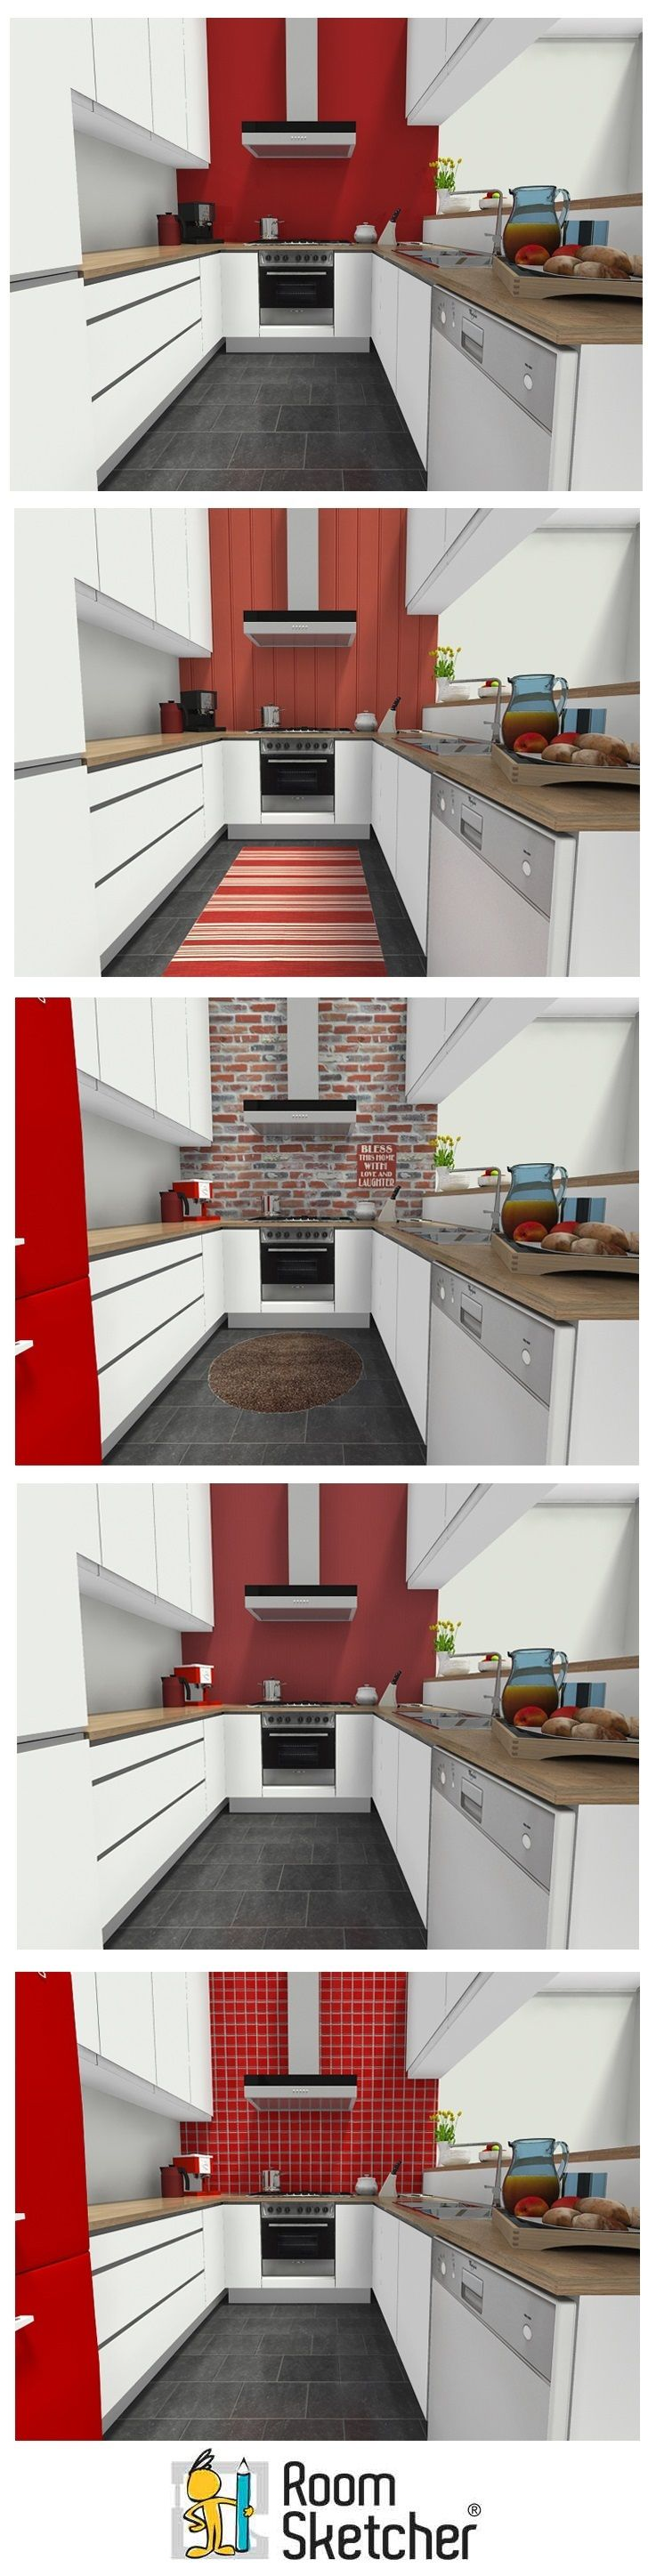 Kitchen Design Options 94 best what's cookin'- kitchen ideas images on pinterest